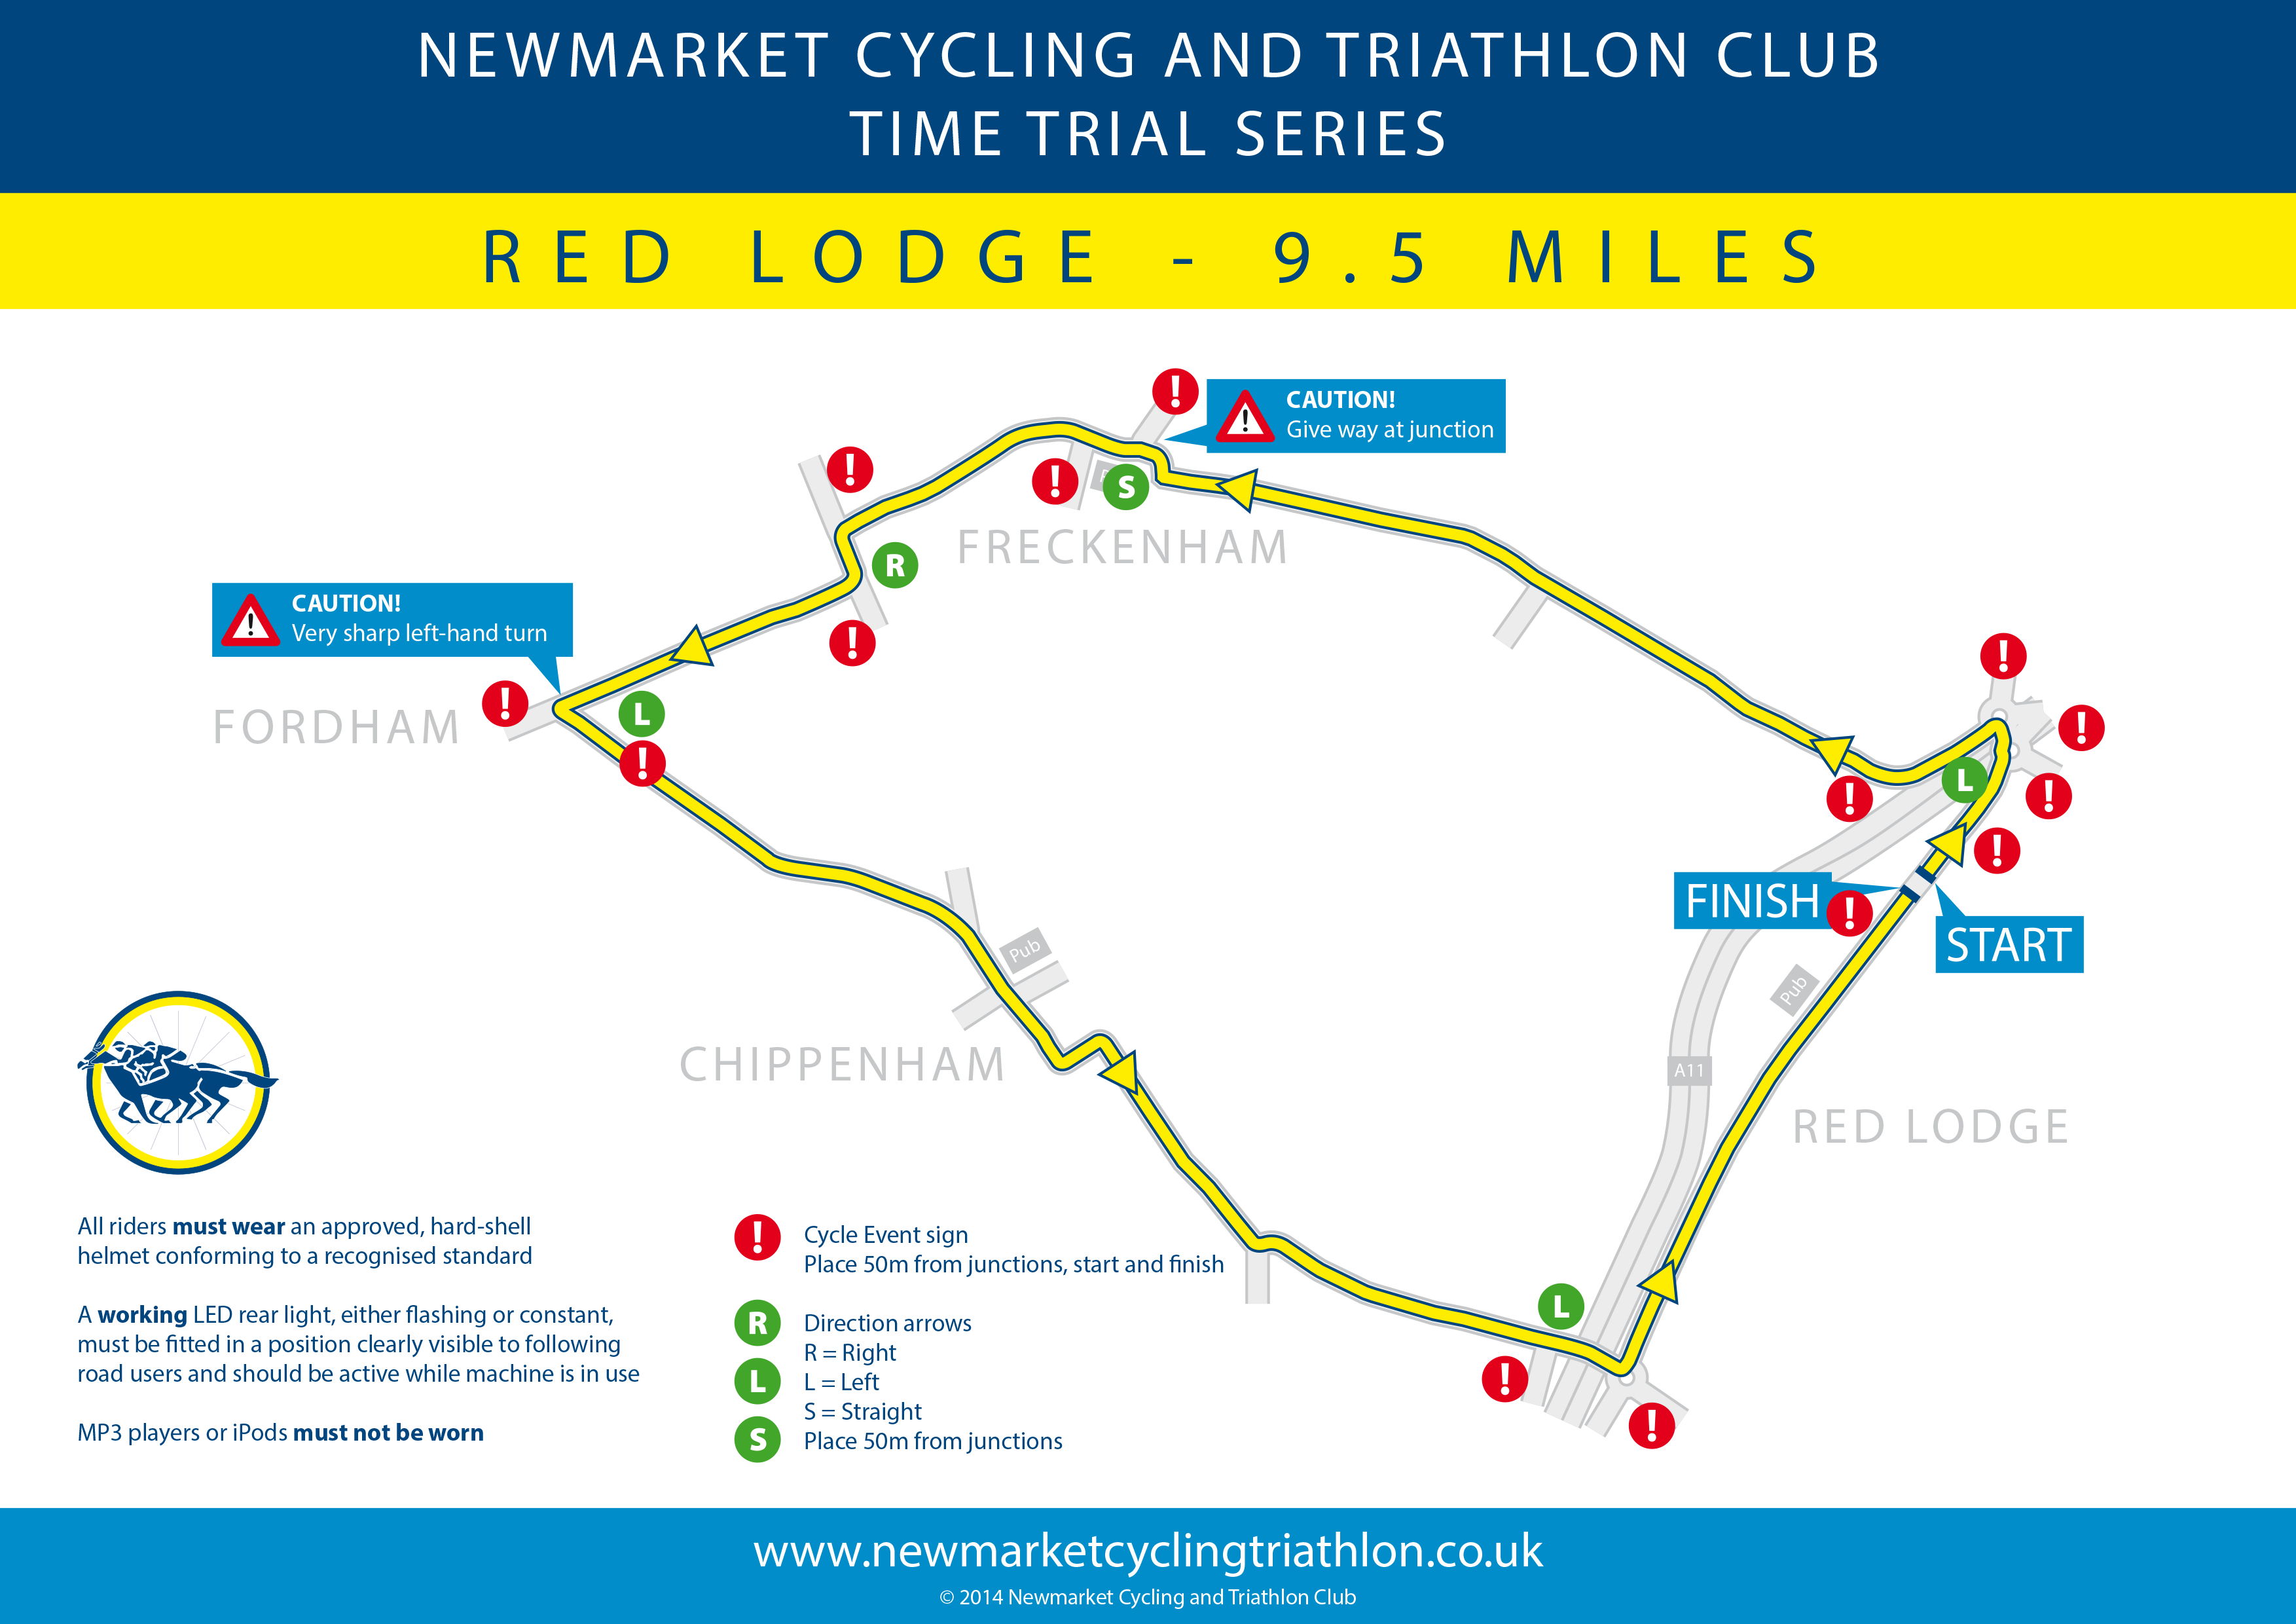 NCTC Red Lodge TT route